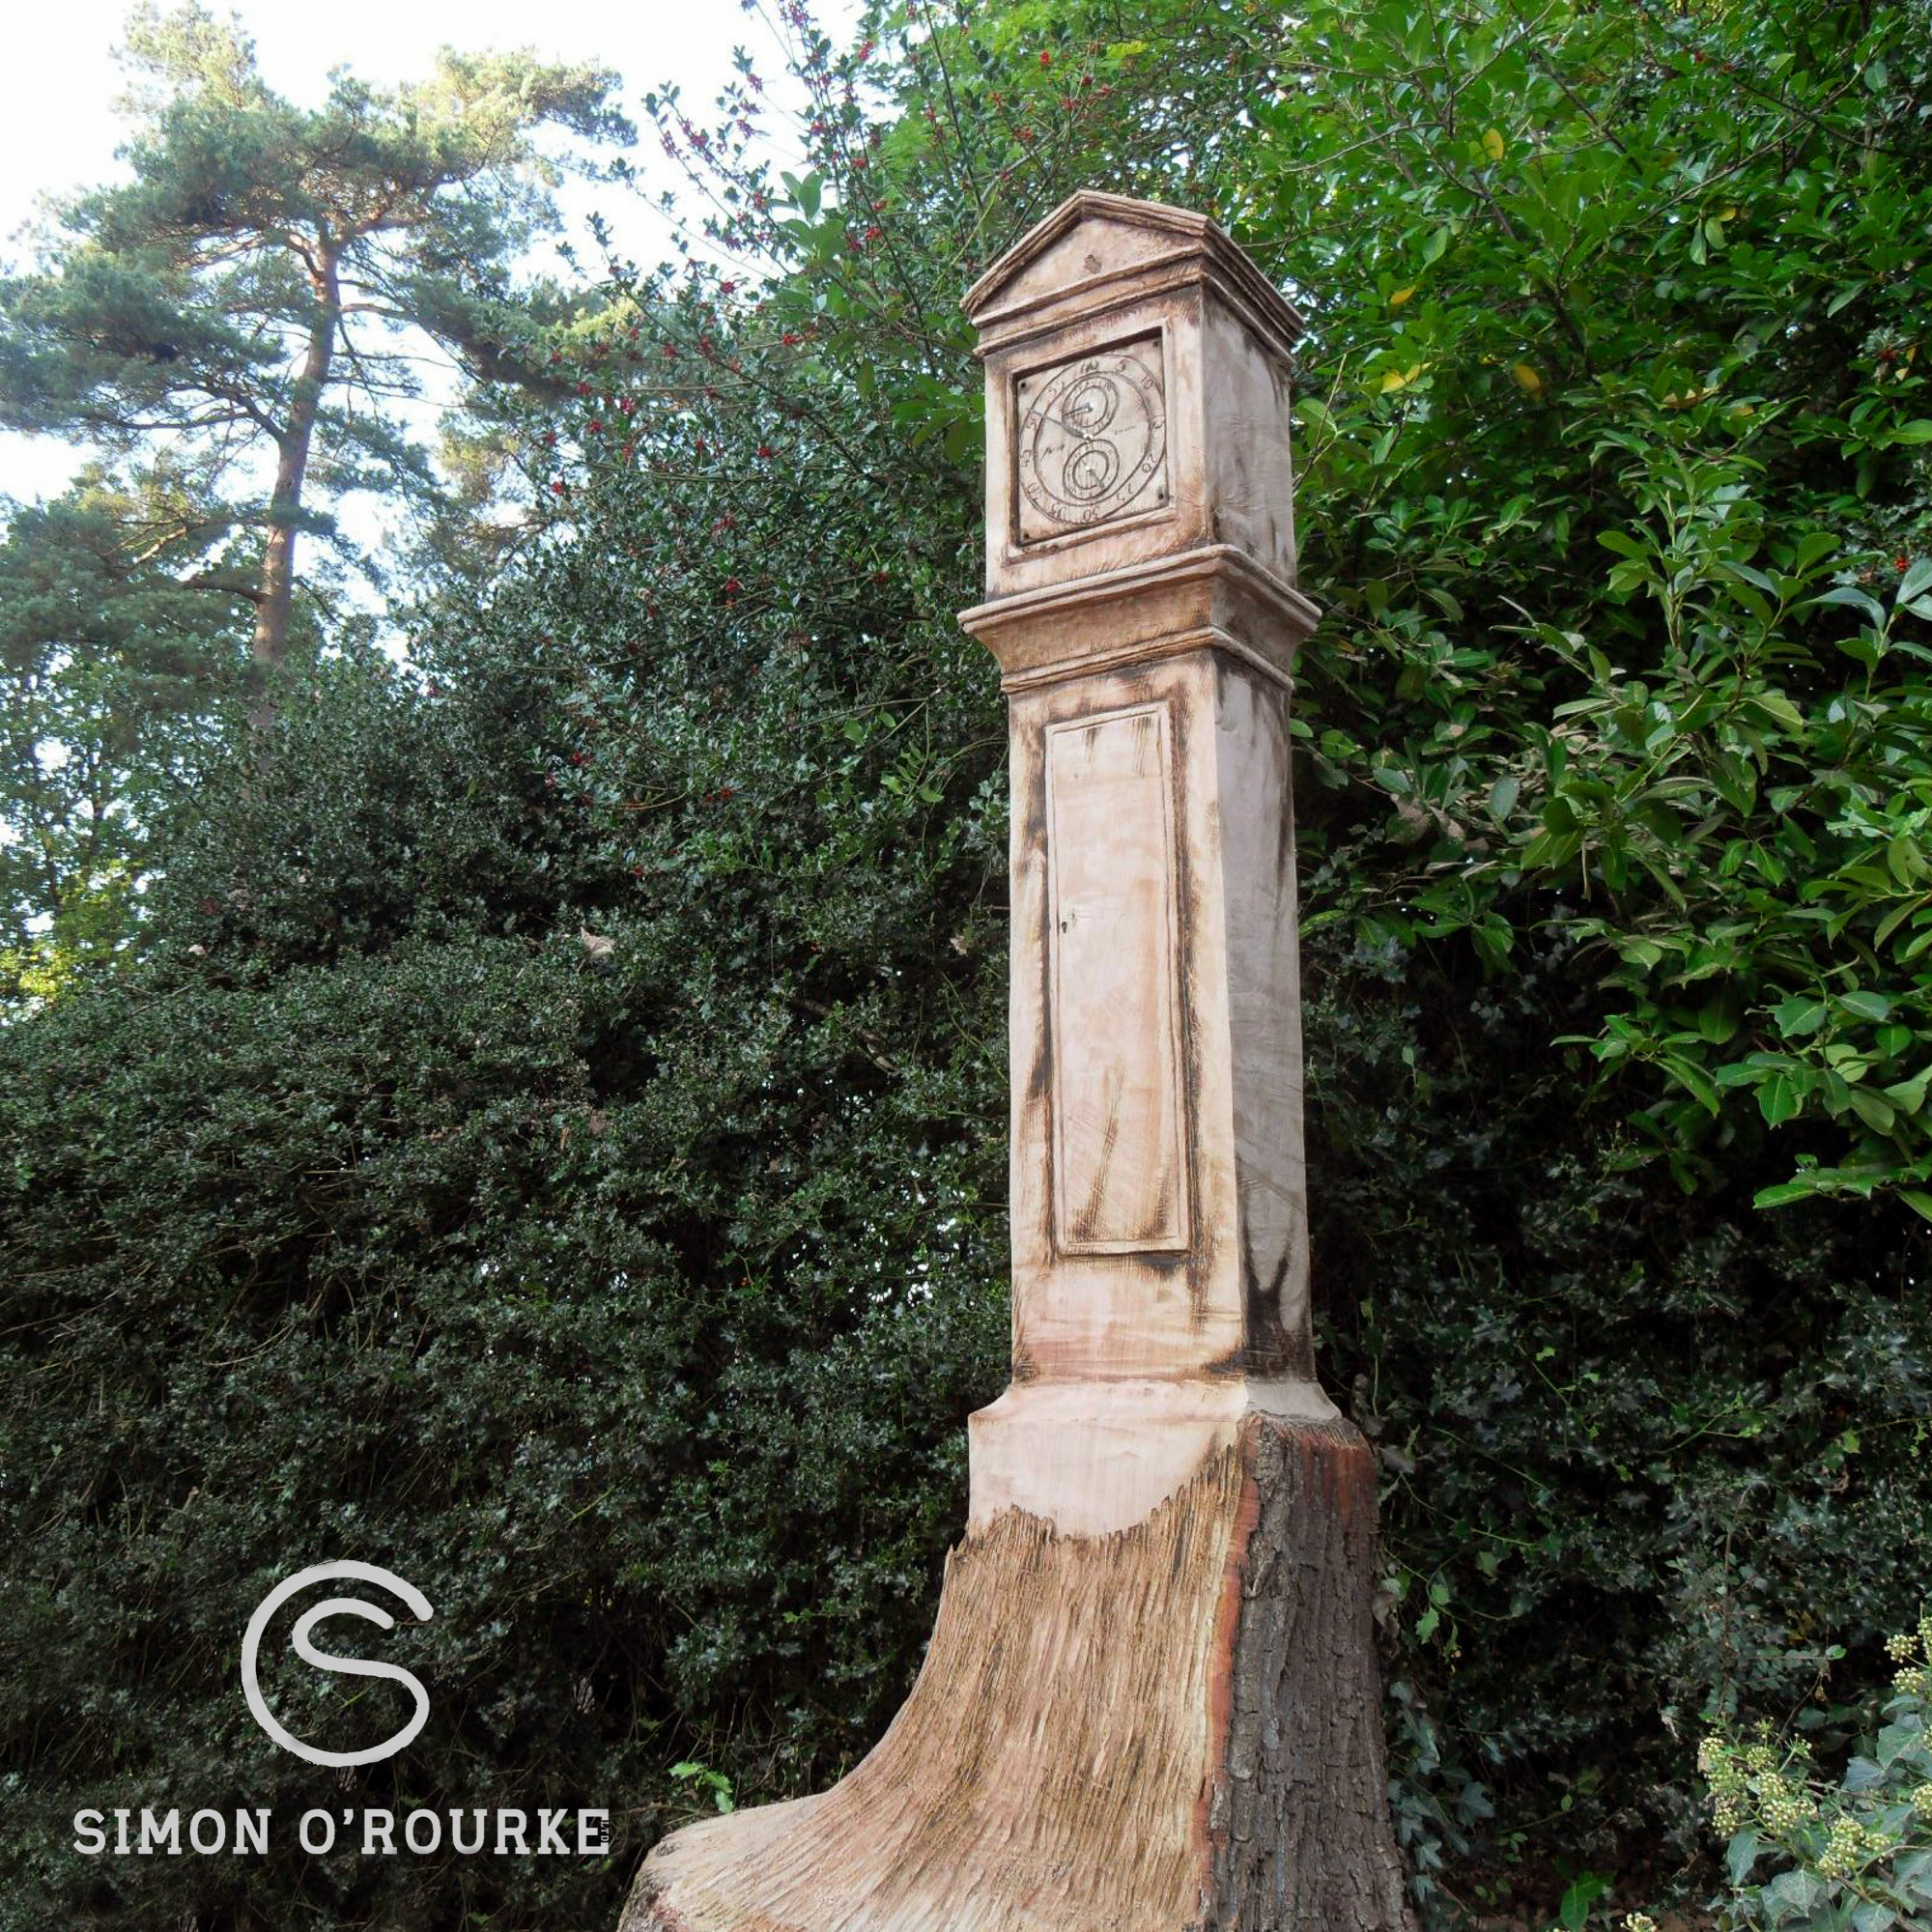 How long will my wood sculpture last? Photo shows a wooden sculpture of a grandfather clock, turning an ashy grey colour. There are no signs of splits or cracks.